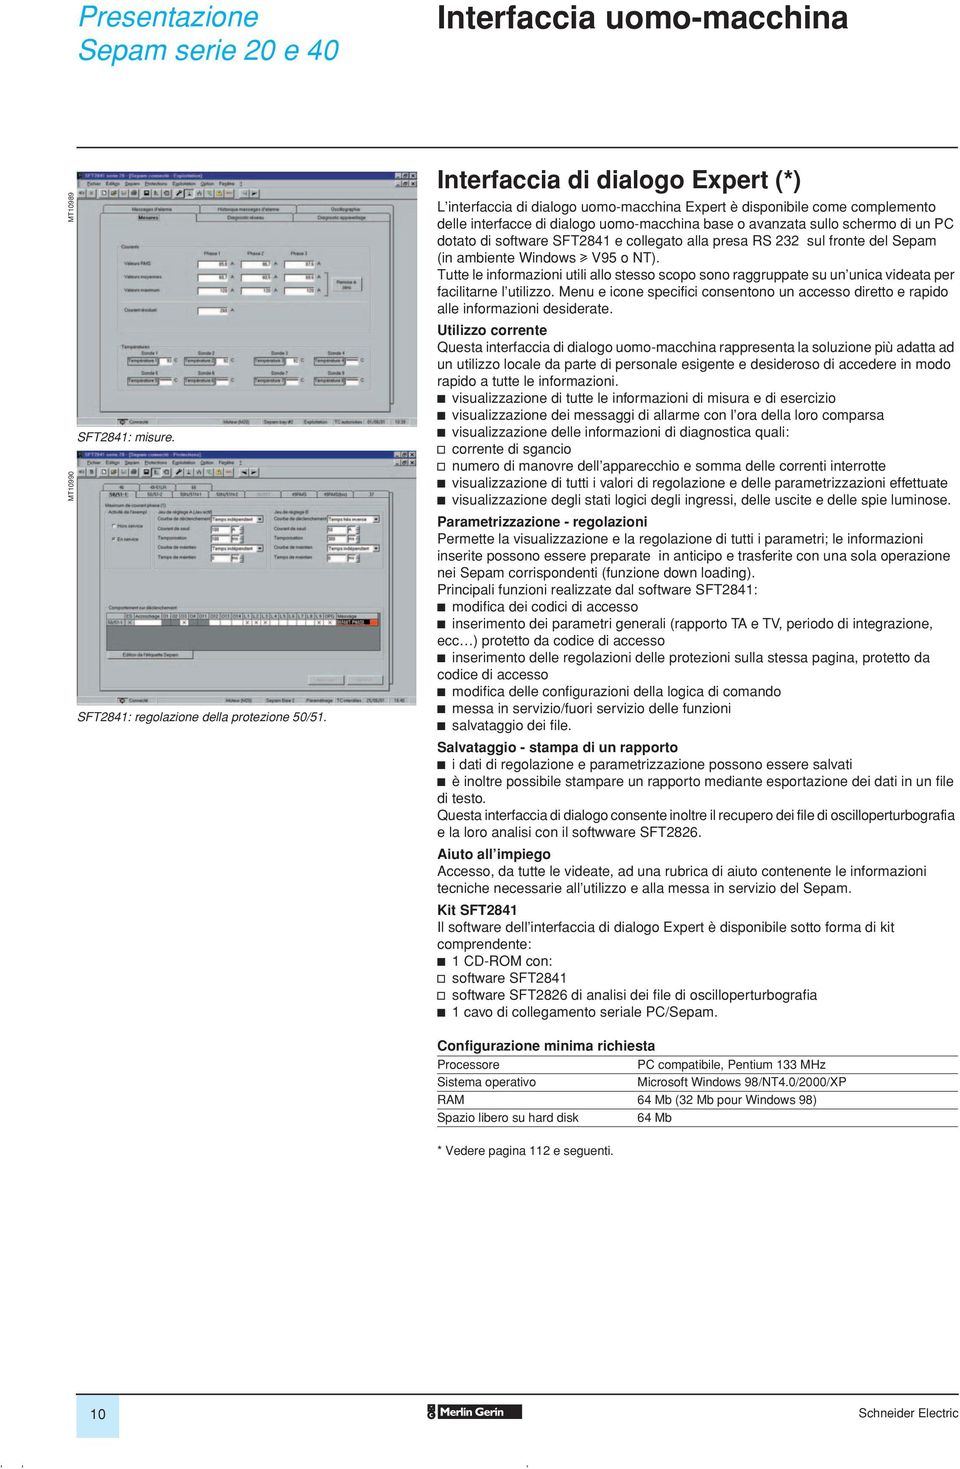 software SFT2841 e collegato alla presa RS 232 sul fronte del Sepam (in amiente Windows u V95 o NT).